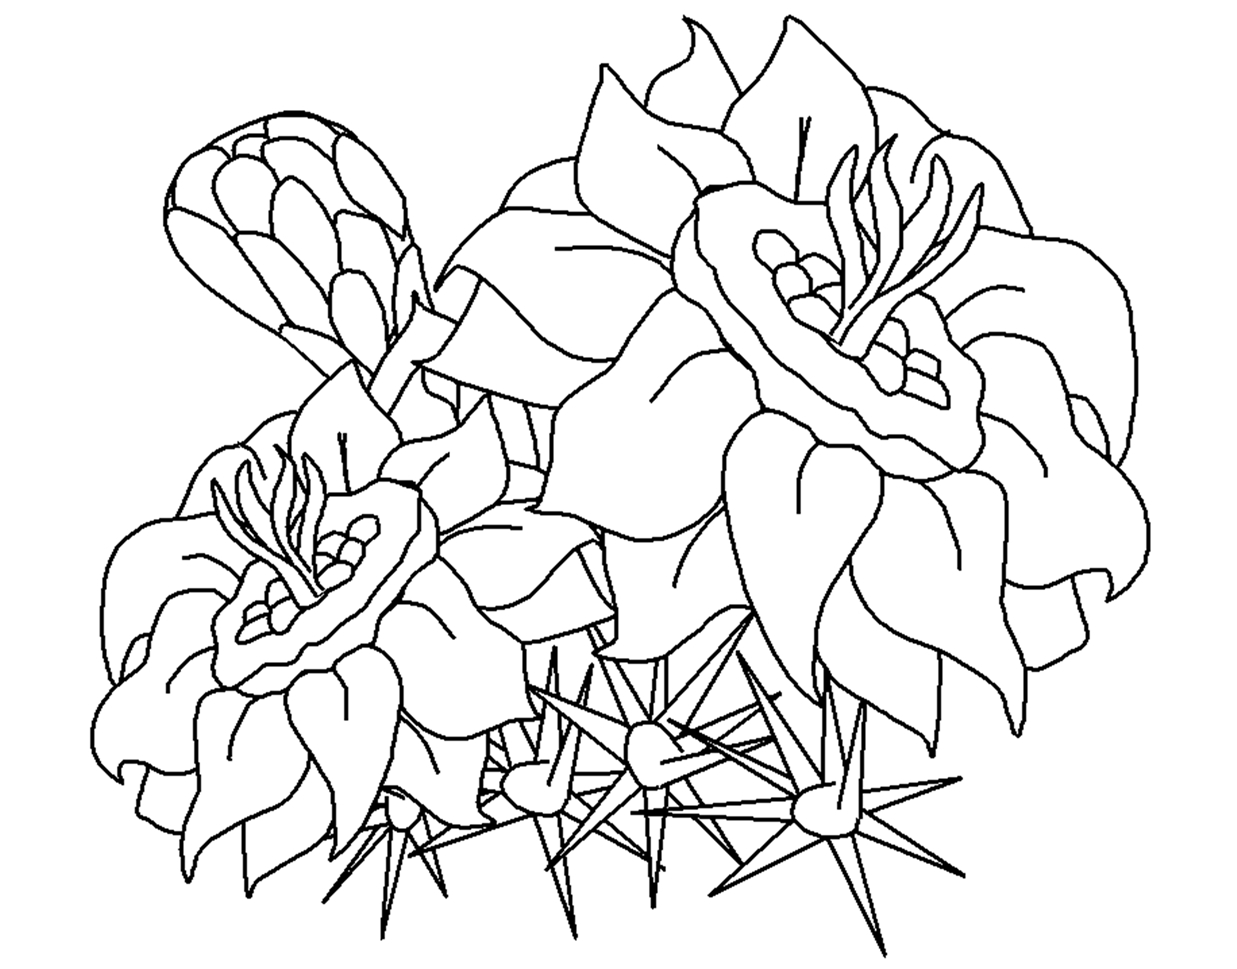 This is a picture of Delicate Printable Flowers Coloring Pages